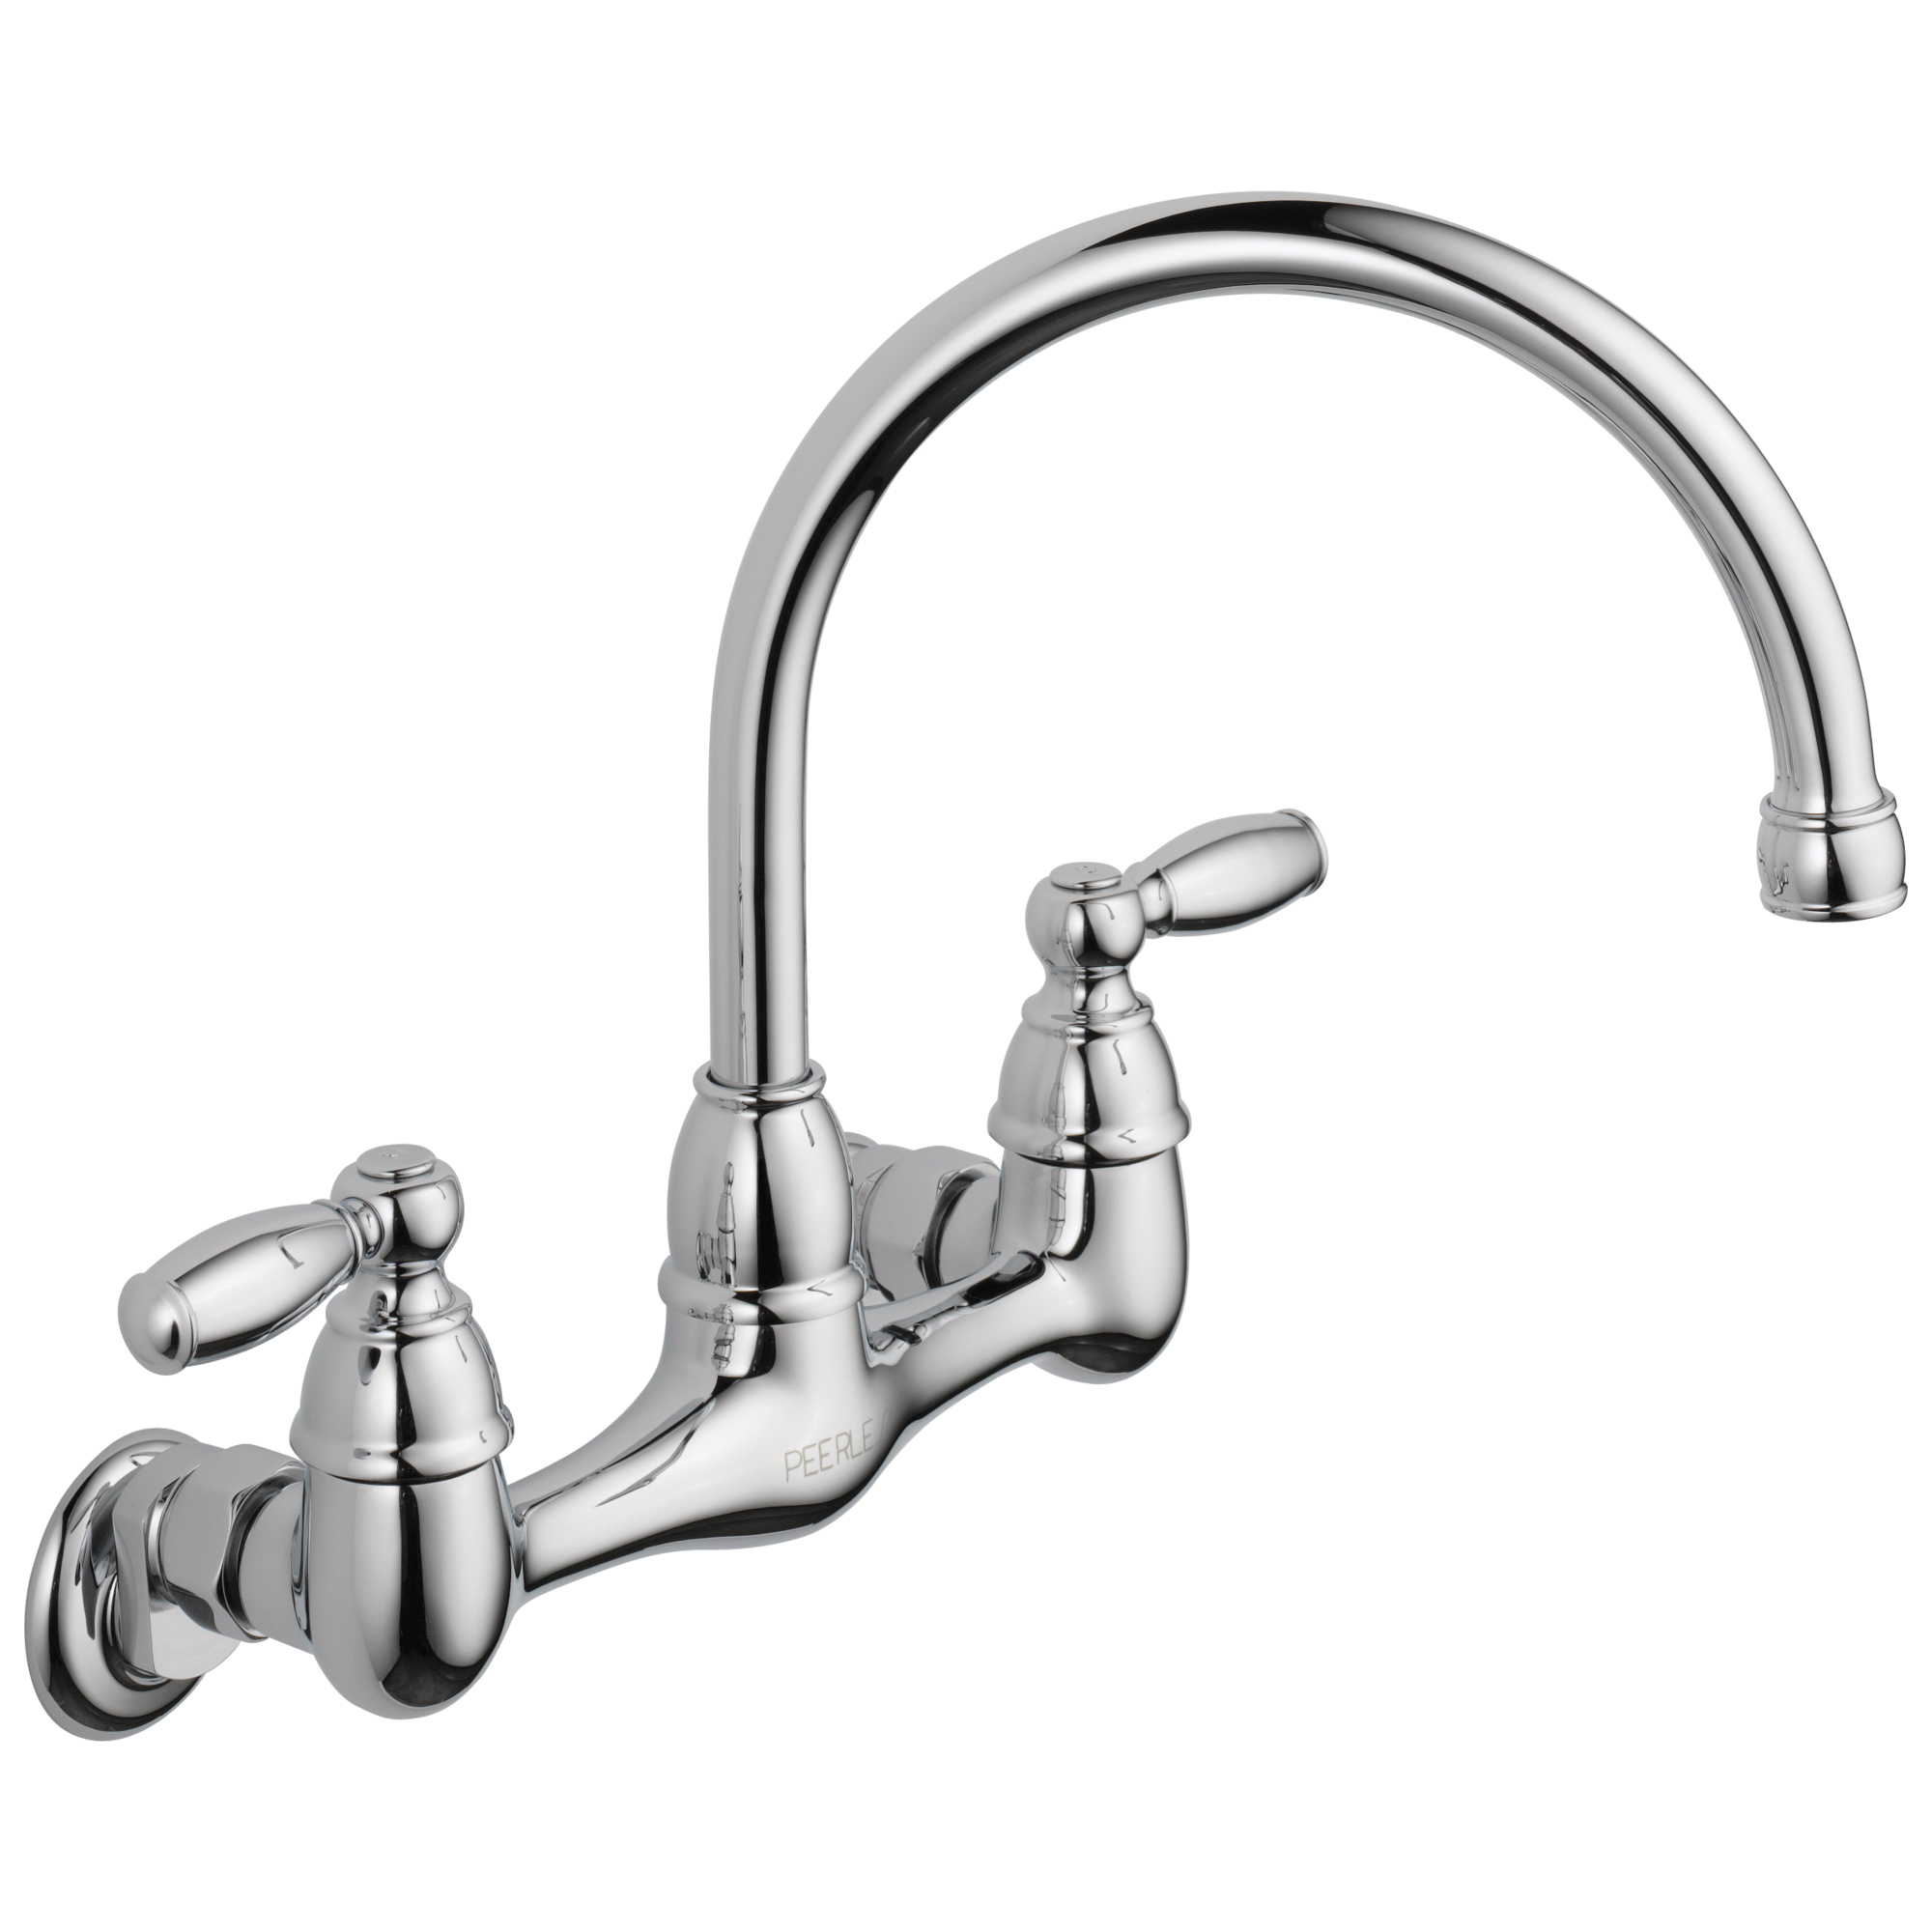 Peerless® P299305LF Kitchen Faucet, Commercial, 1.8 gpm Flow Rate, 7 to 9 in Center, High-Arc Spout, Polished Chrome, 2 Handles, Import